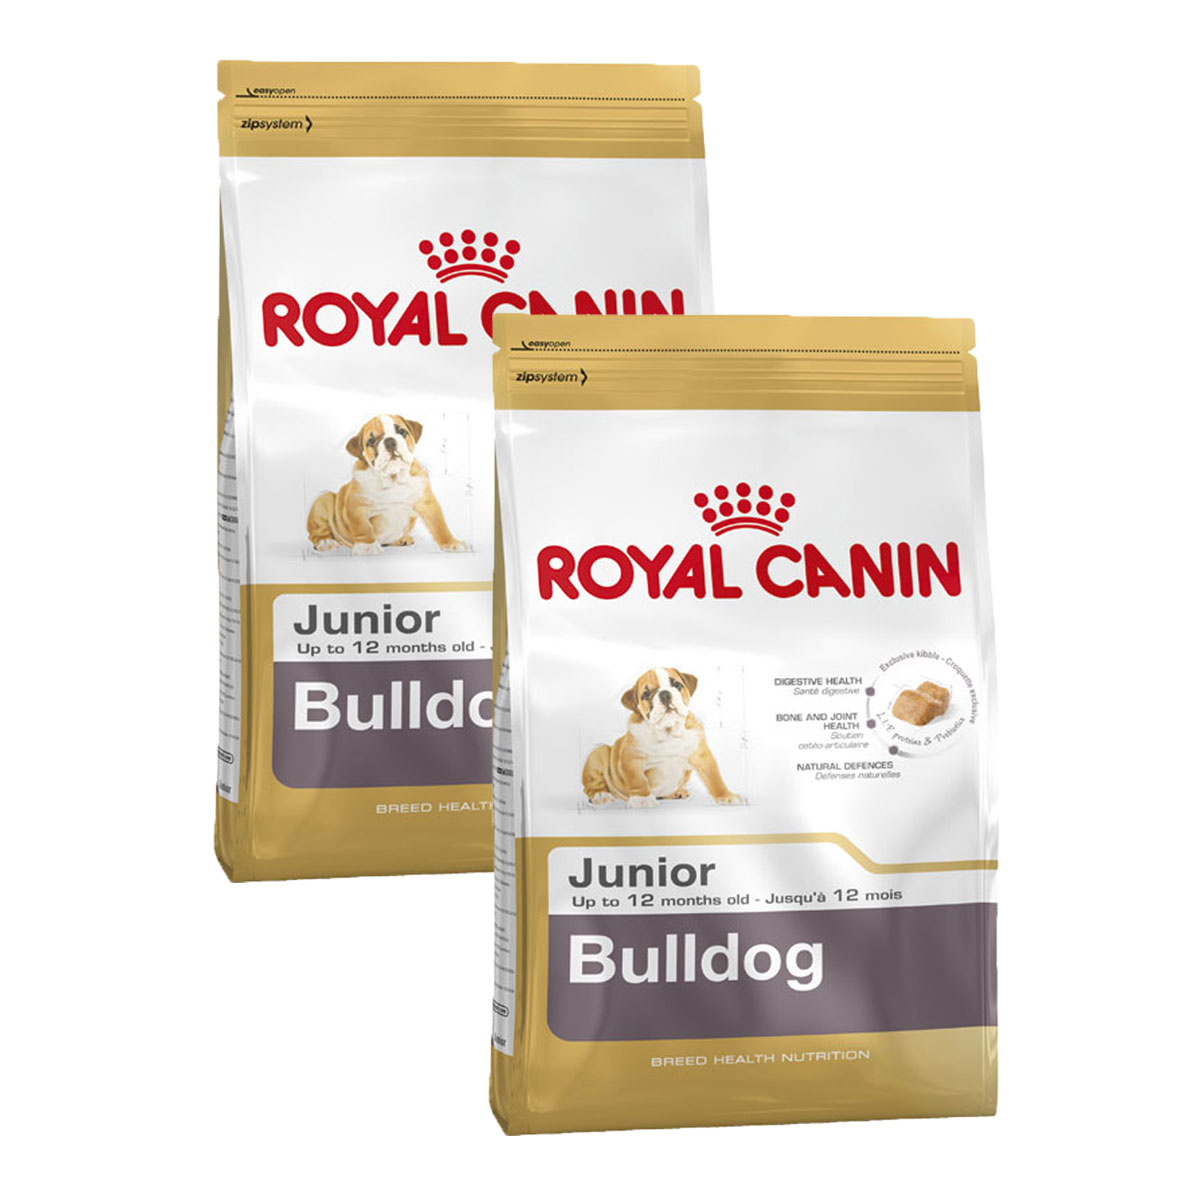 royal canin bulldog junior g nstig kaufen bei zooroyal. Black Bedroom Furniture Sets. Home Design Ideas